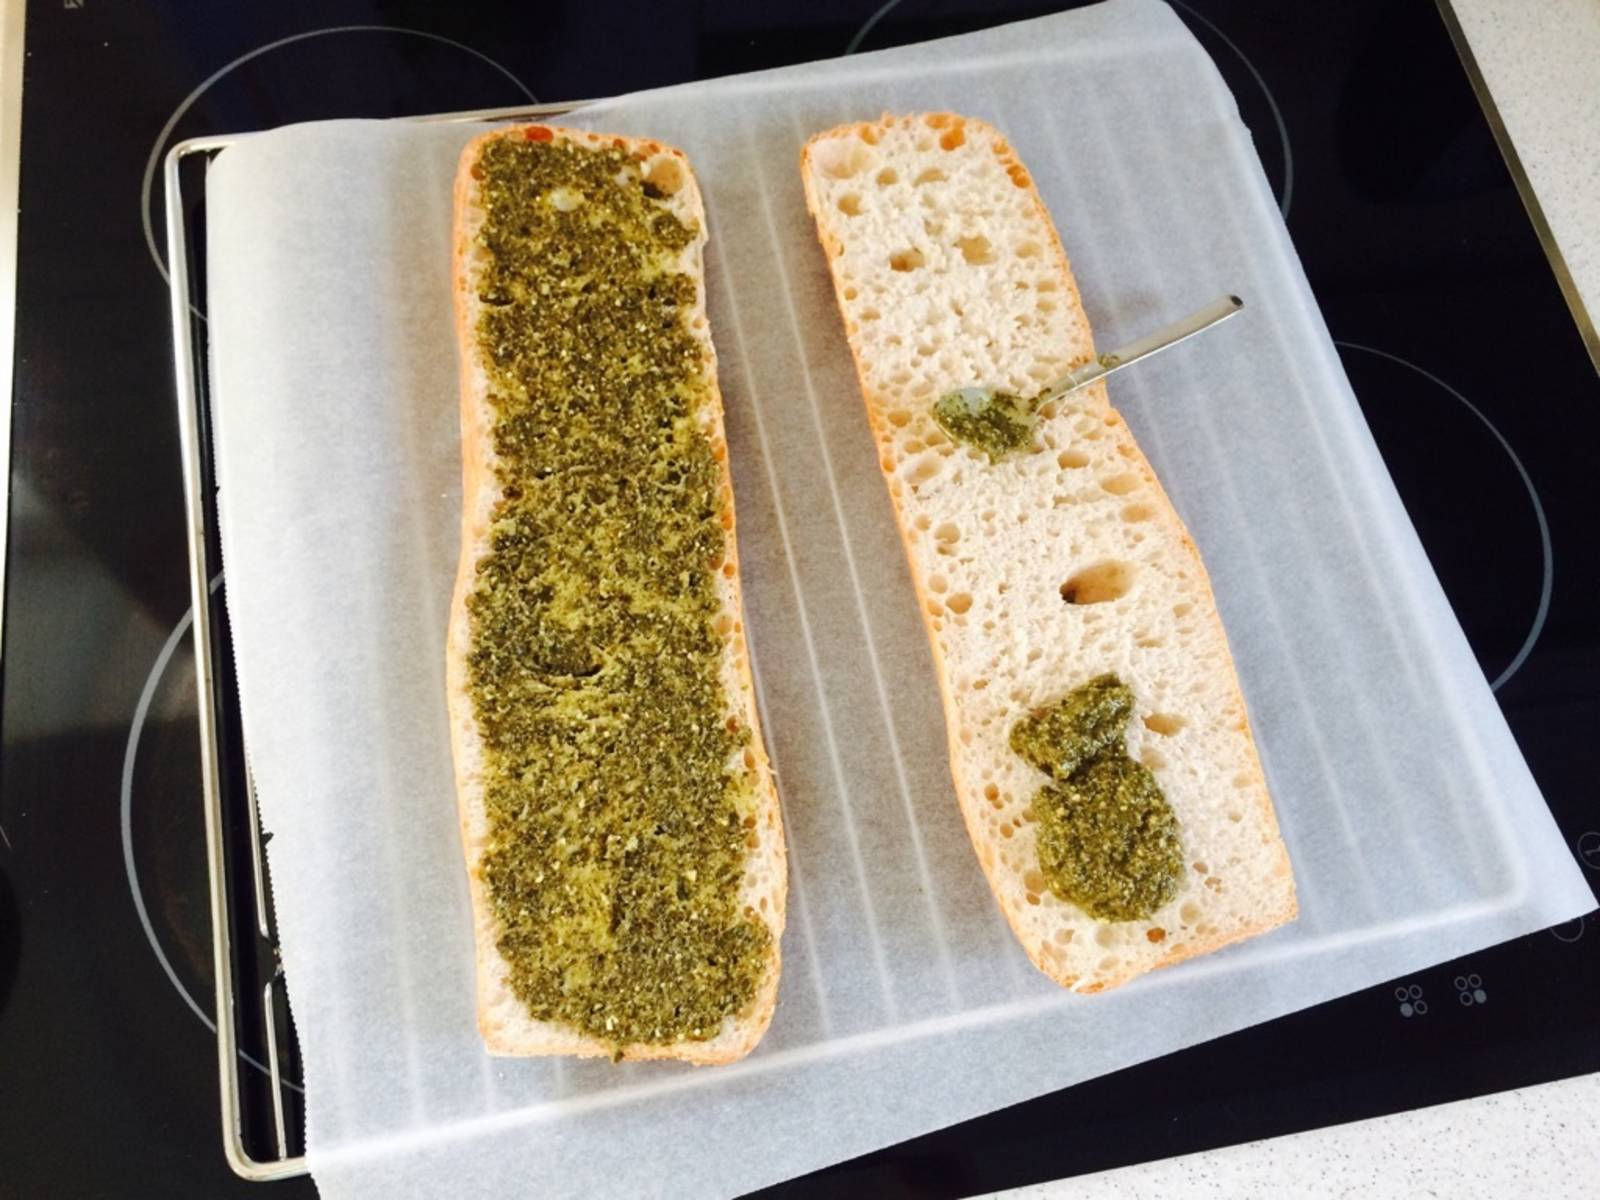 Pre-heat the oven to 200°C/390°F. Halve ciabatta and spread pesto on top.